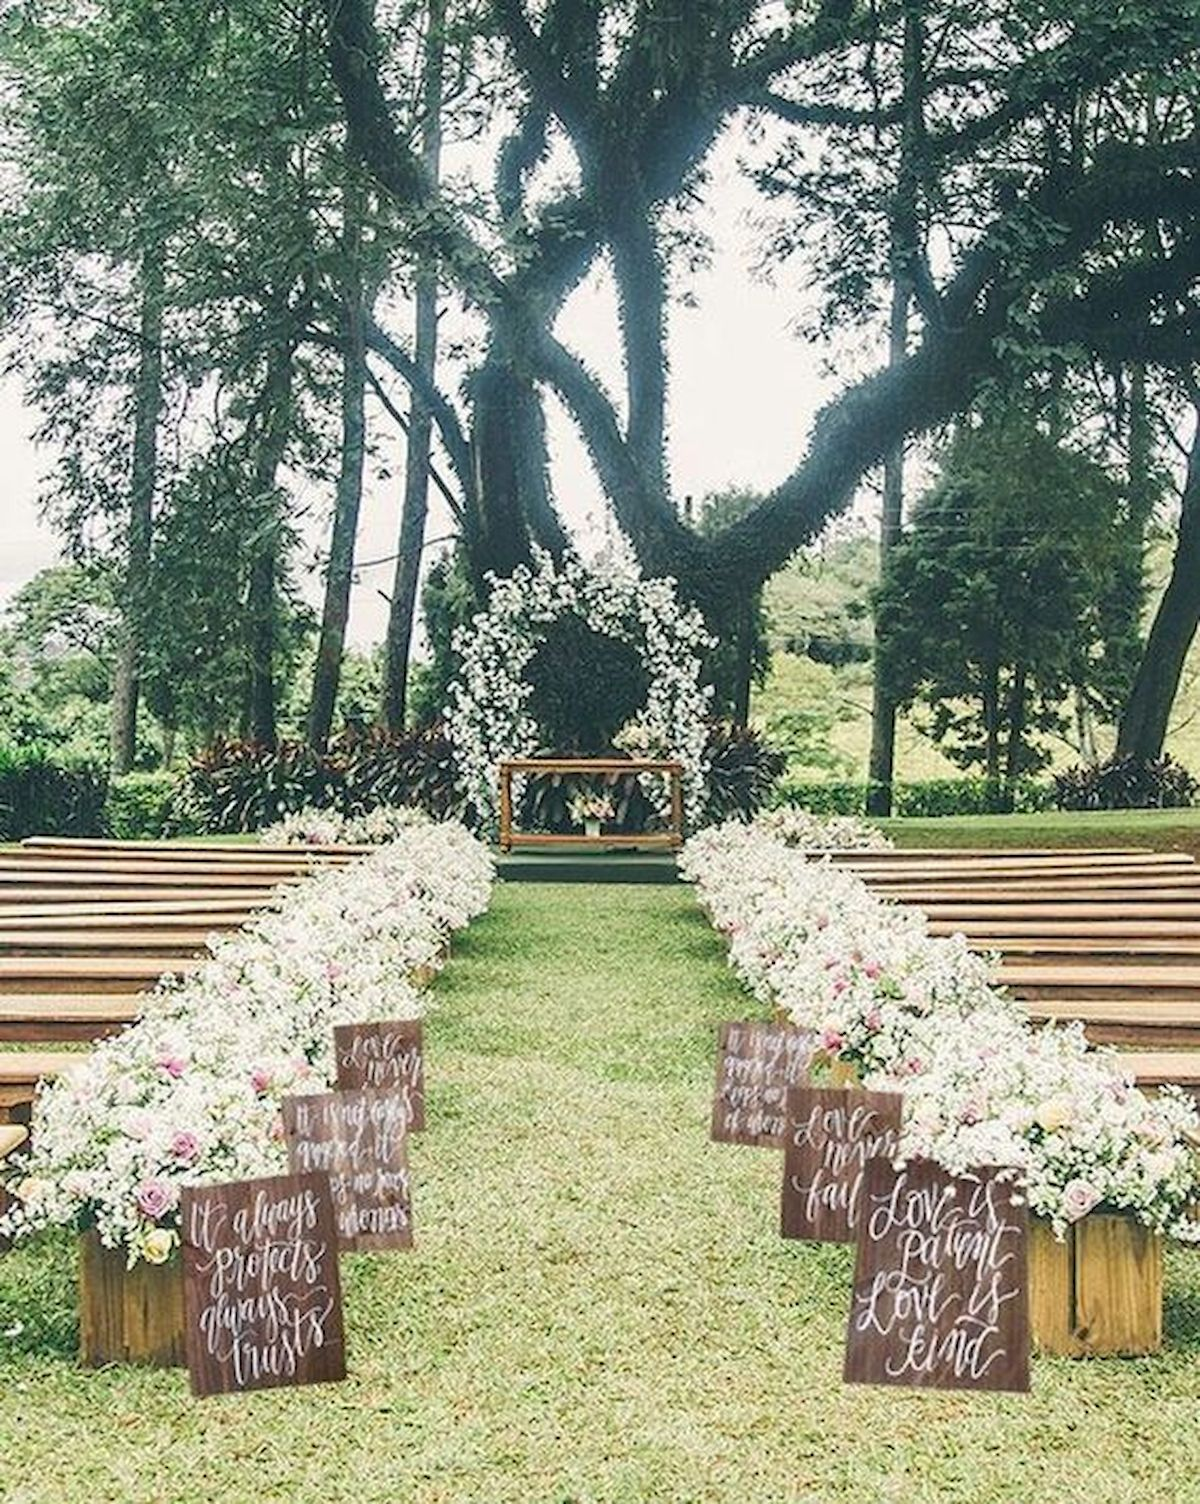 Nice 70 Beautiful Outdoor Spring Wedding Ideas Https Coachdecor Com 70 Beautiful Outdoor Spring Outdoor Wedding Decorations Outdoor Wedding Romantic Backyard